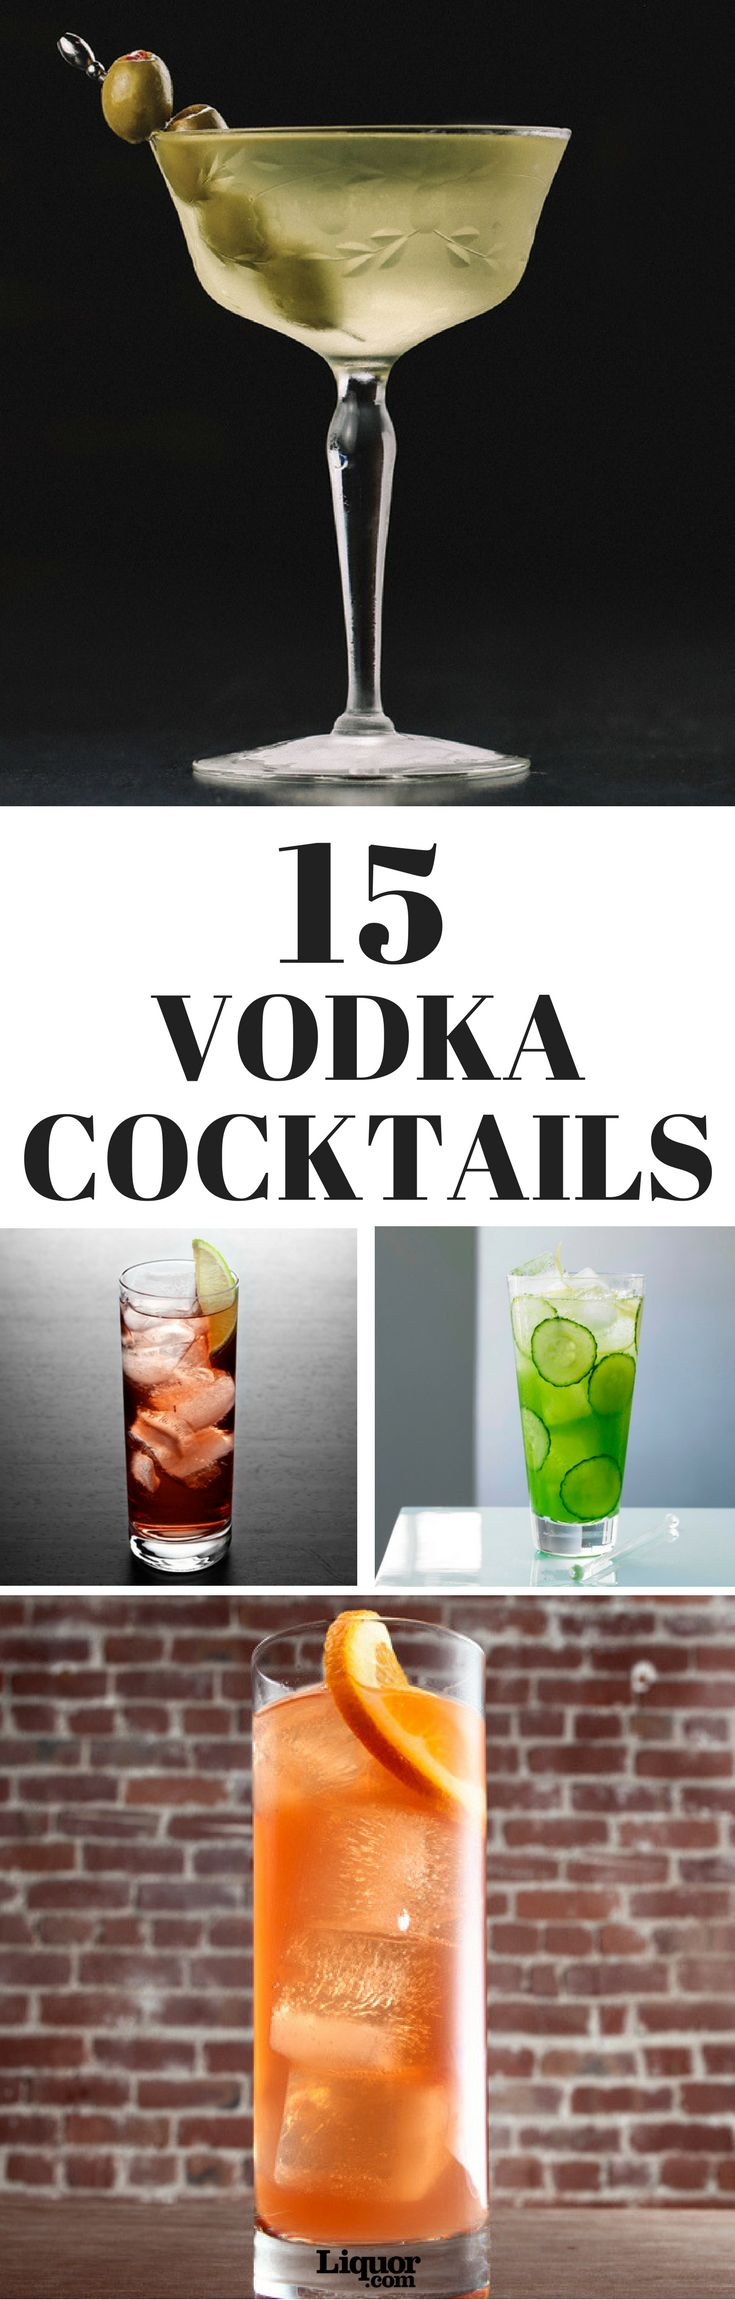 Vodka drinks utilize the neutral taste of the spirit to blend seamlessly with just about anything. From the classic Vodka Martini to the fruity Cosmopolitan, check out some of our favorite Vodka Drinks.